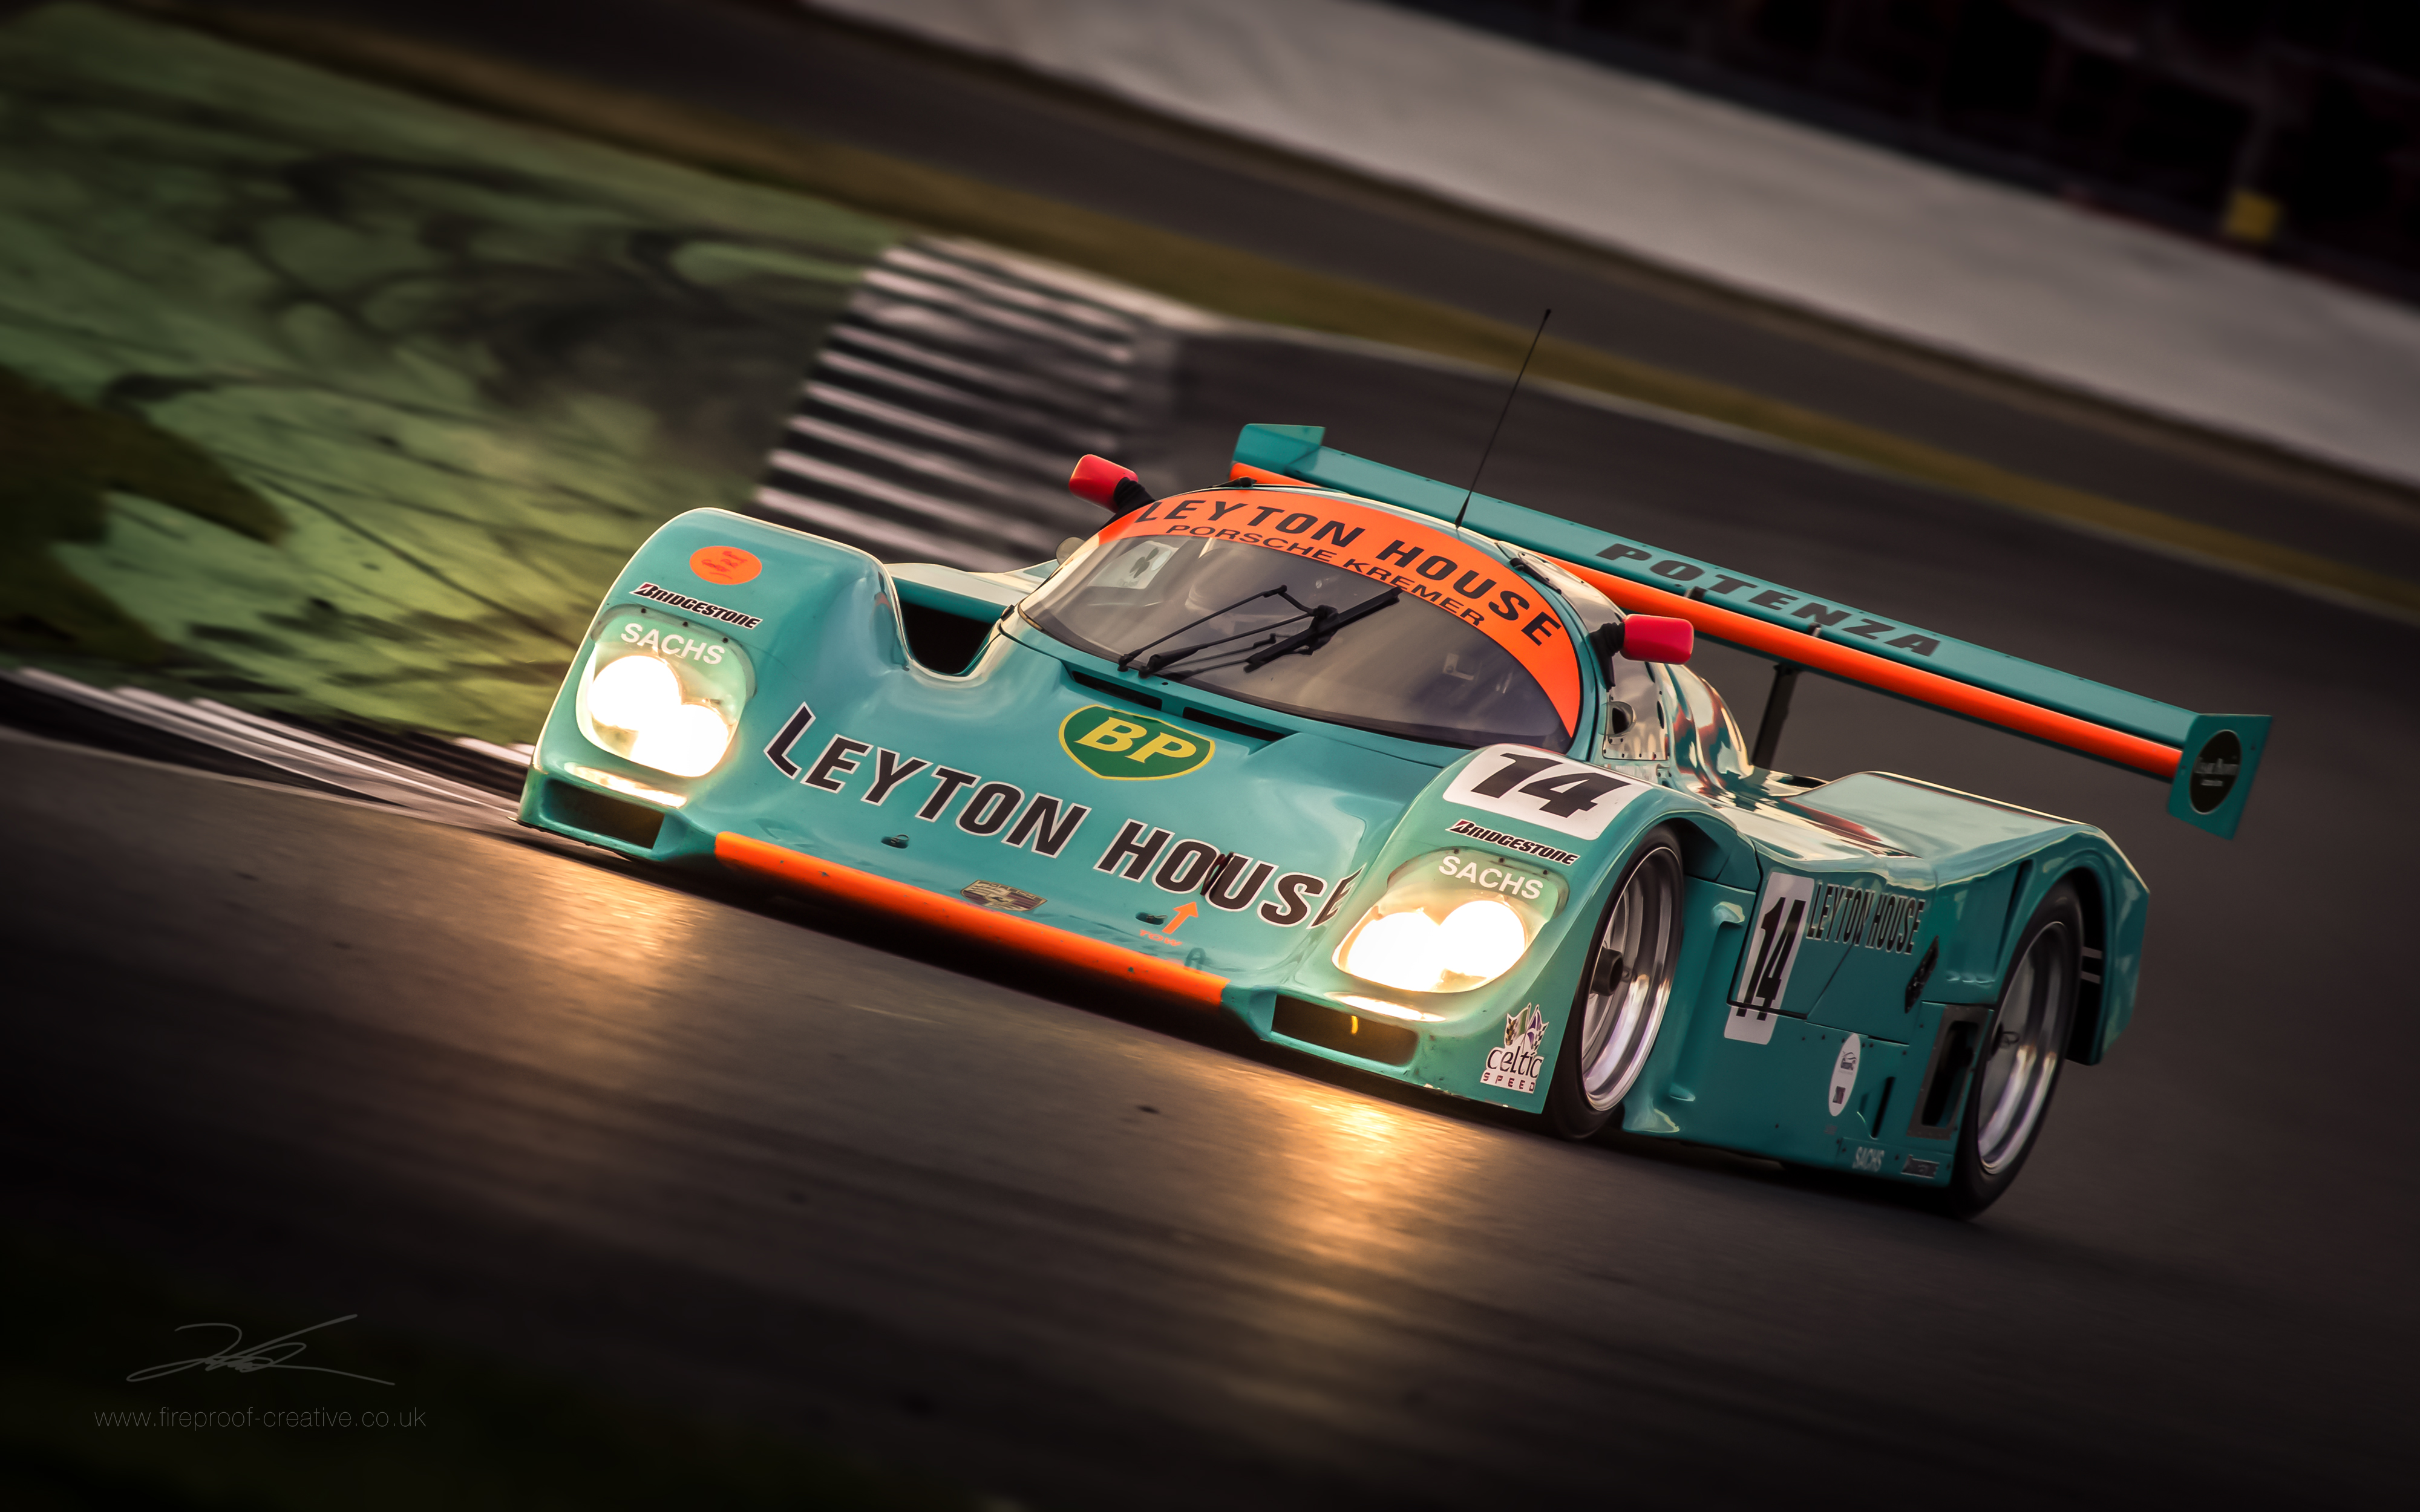 Ot Leyton House Porsche 962 From The Silverstone Classic Wec